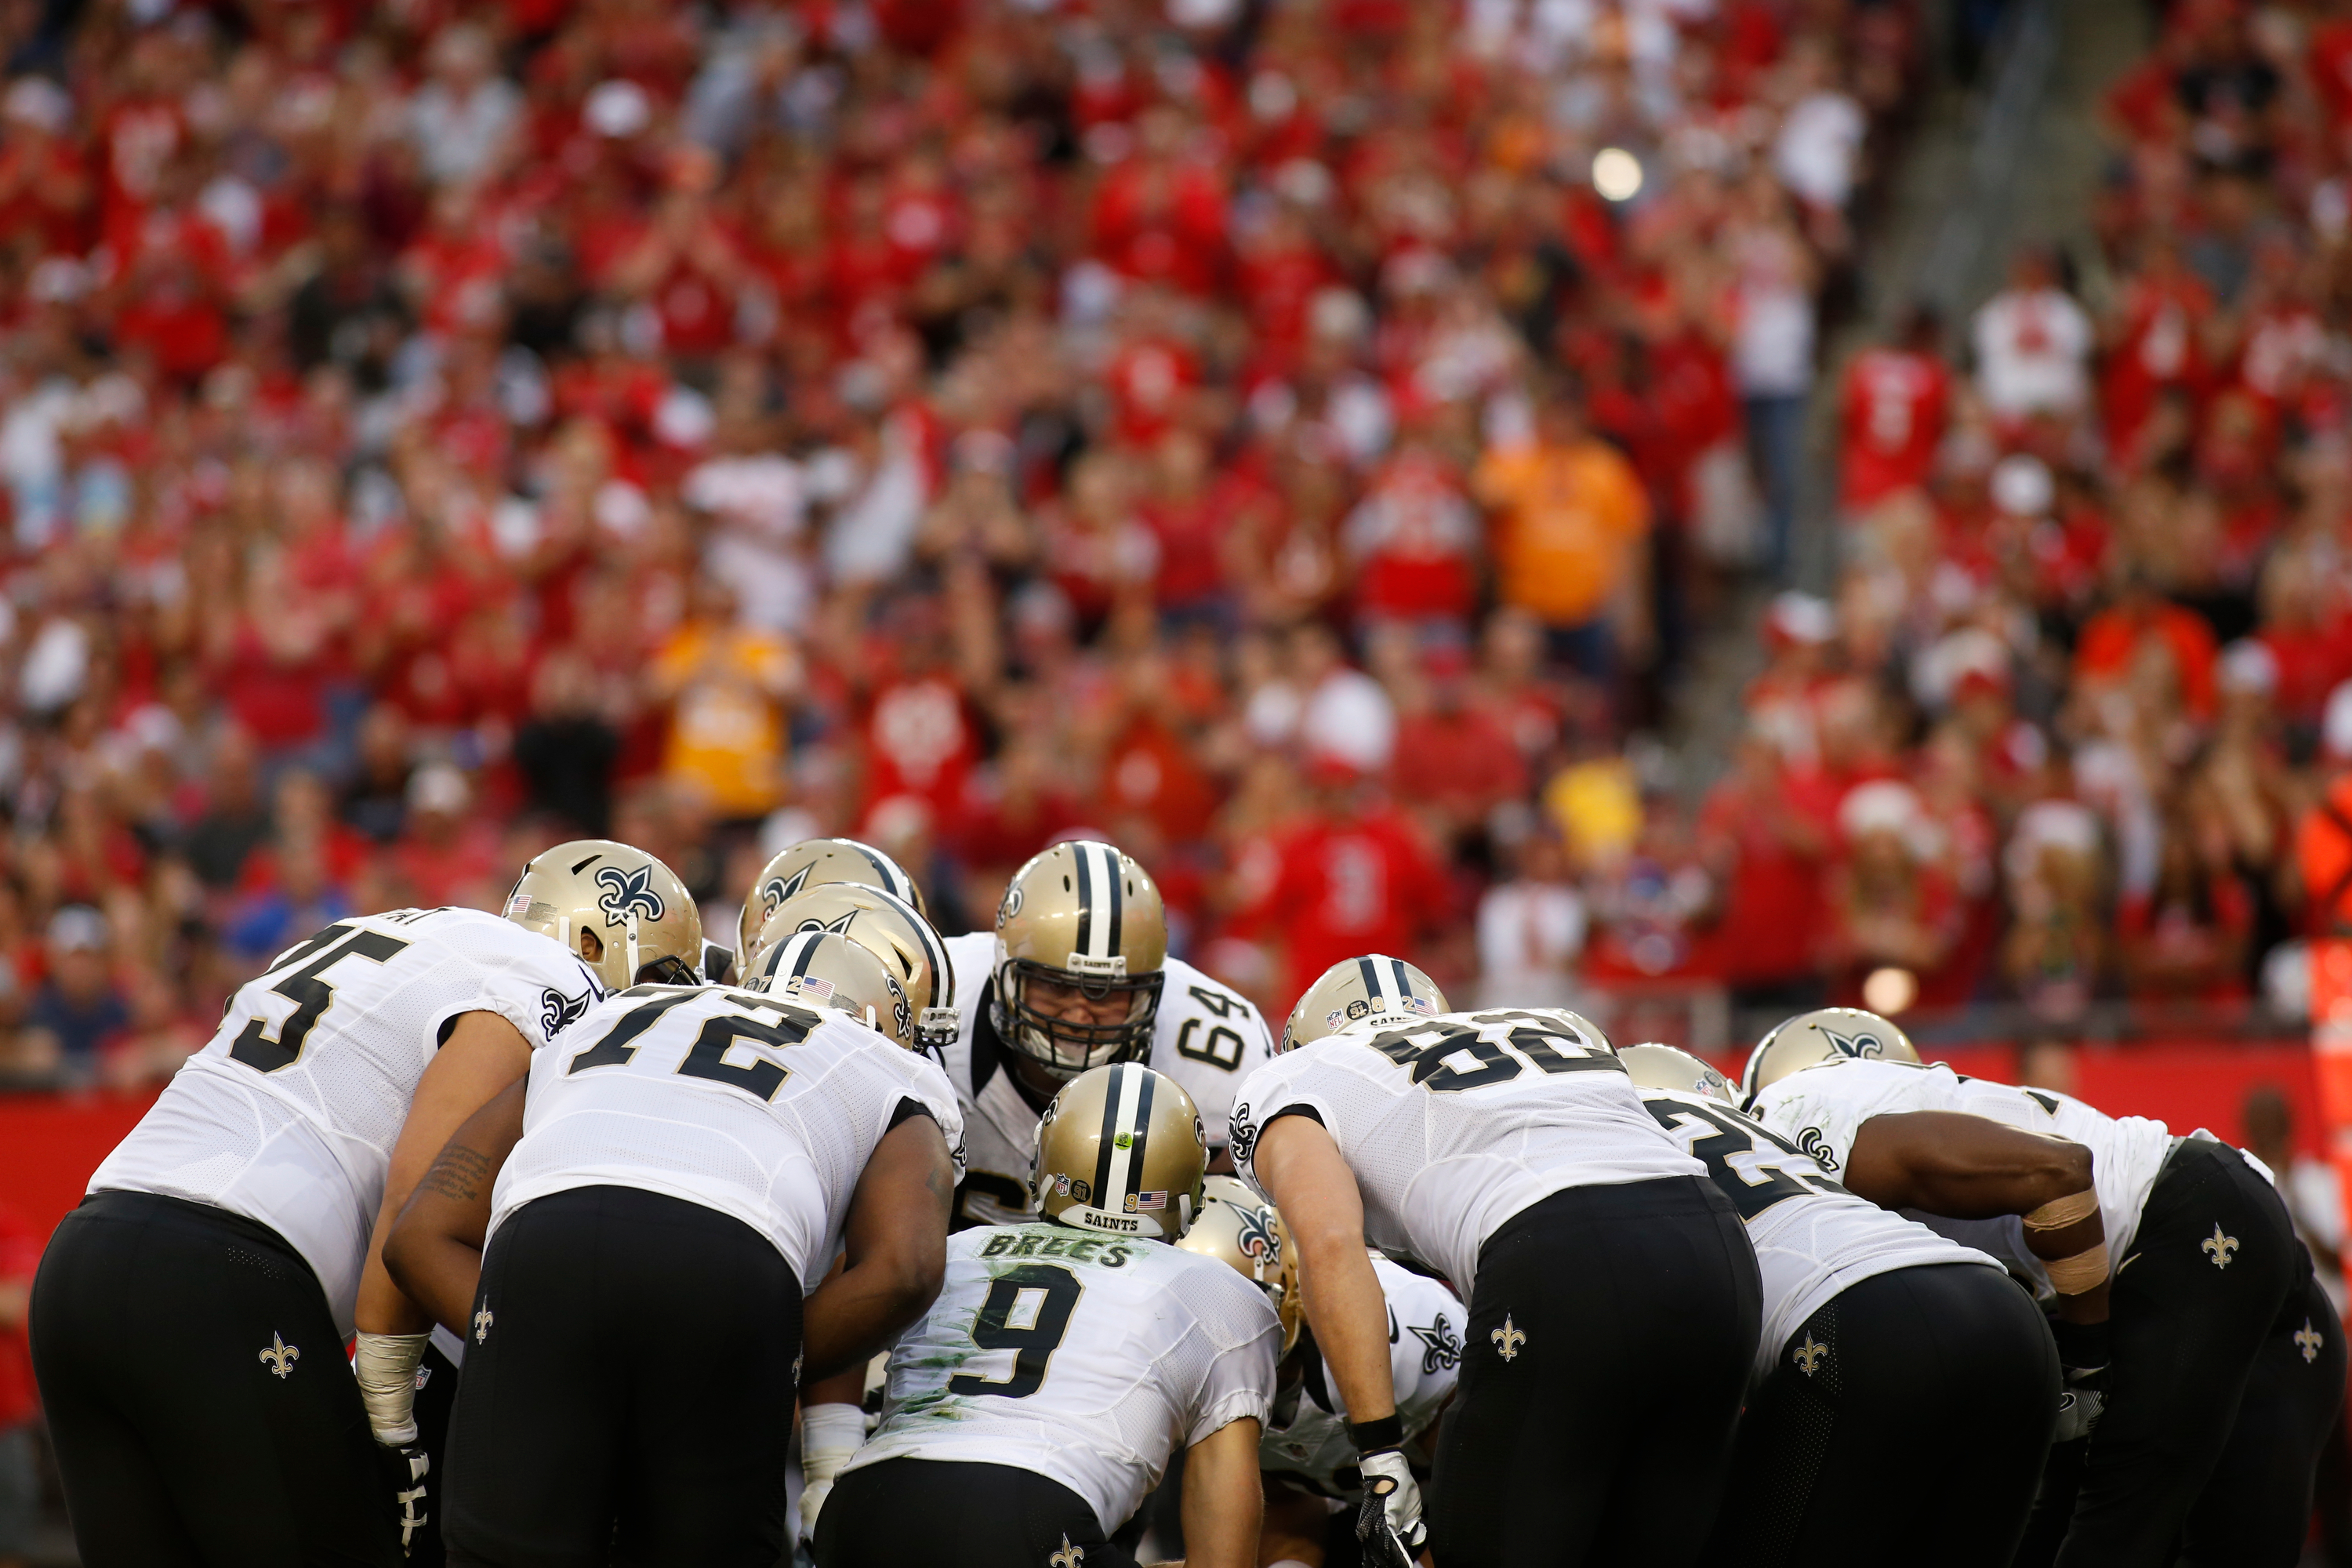 TAMPA, FL - New Orleans Saints quarterback Drew Brees (9) huddles the offense during a game against the Tampa Bay Buccaneers at Raymond James Stadium.